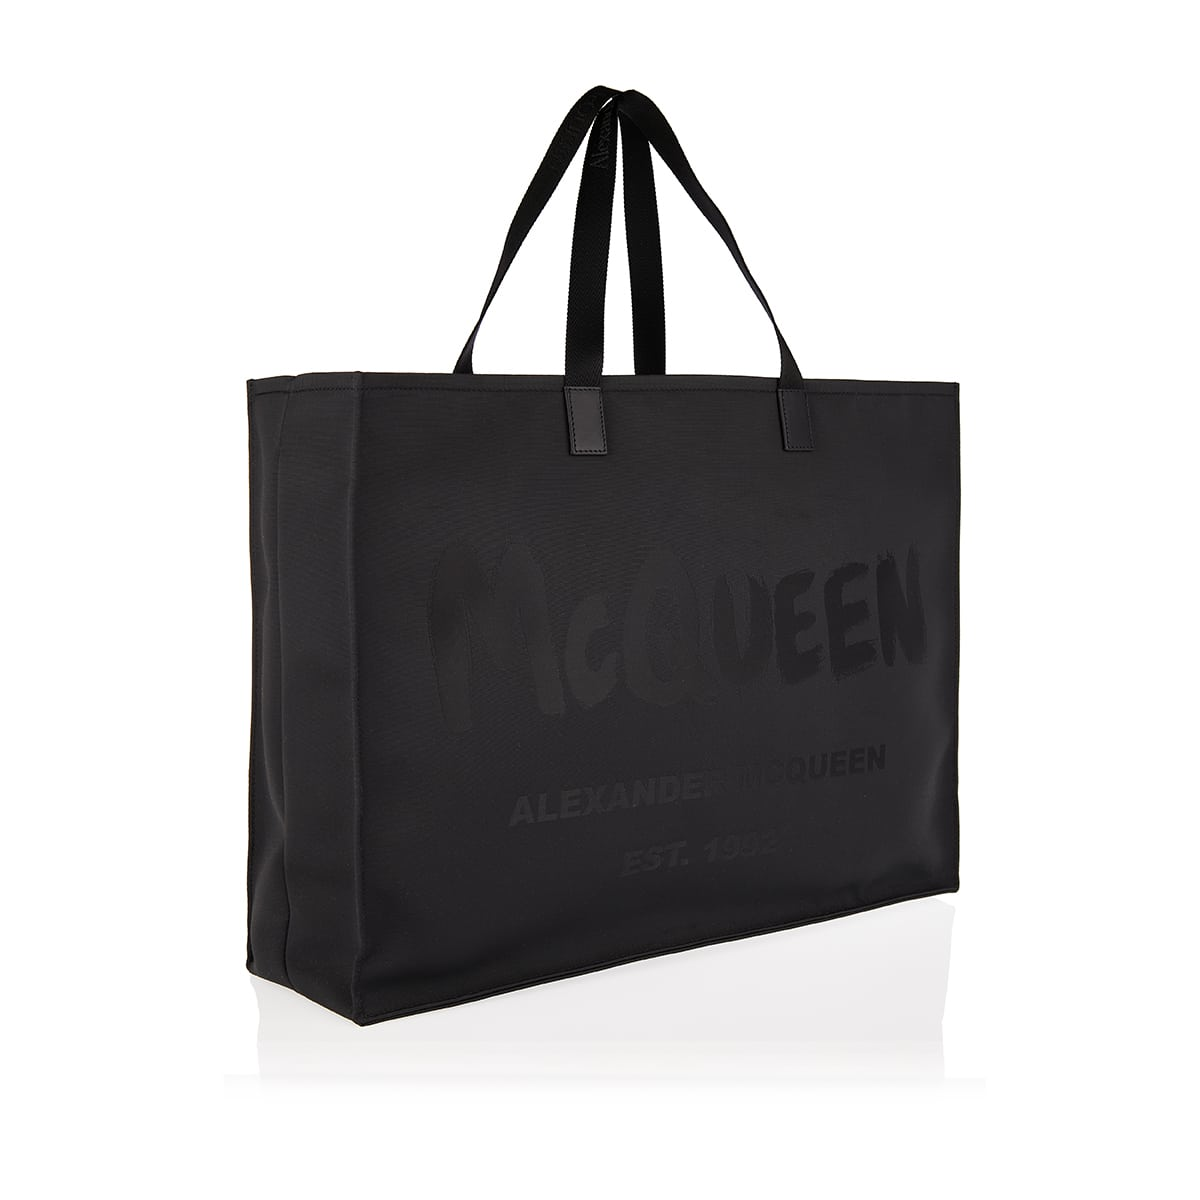 East West large logo tote